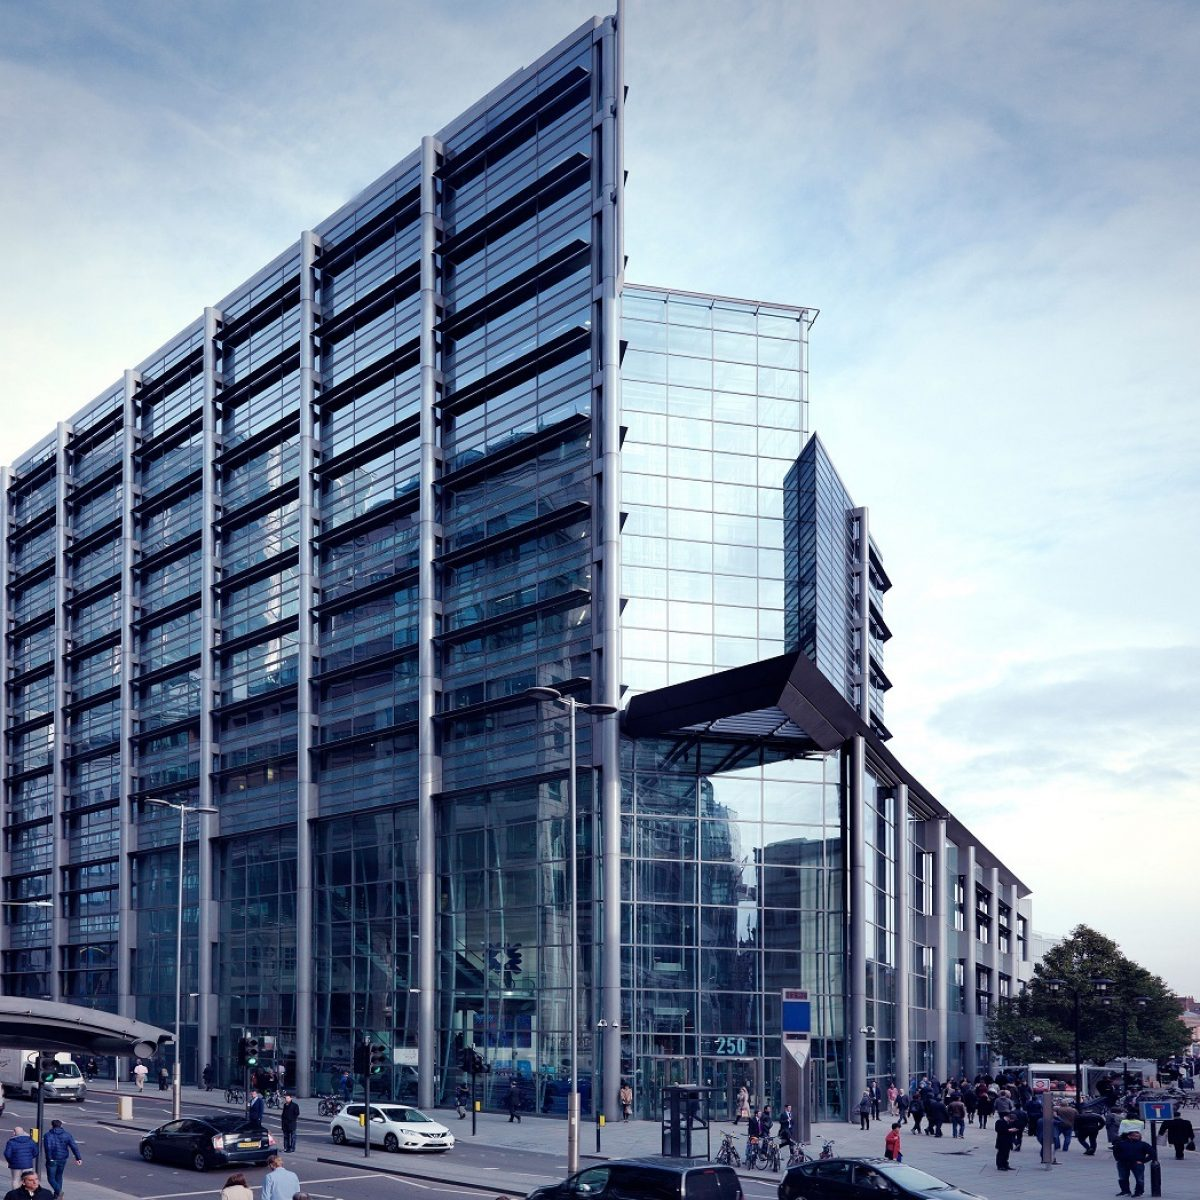 One of the research hubs will be located in Leeds. Image: Mark Stevenson.